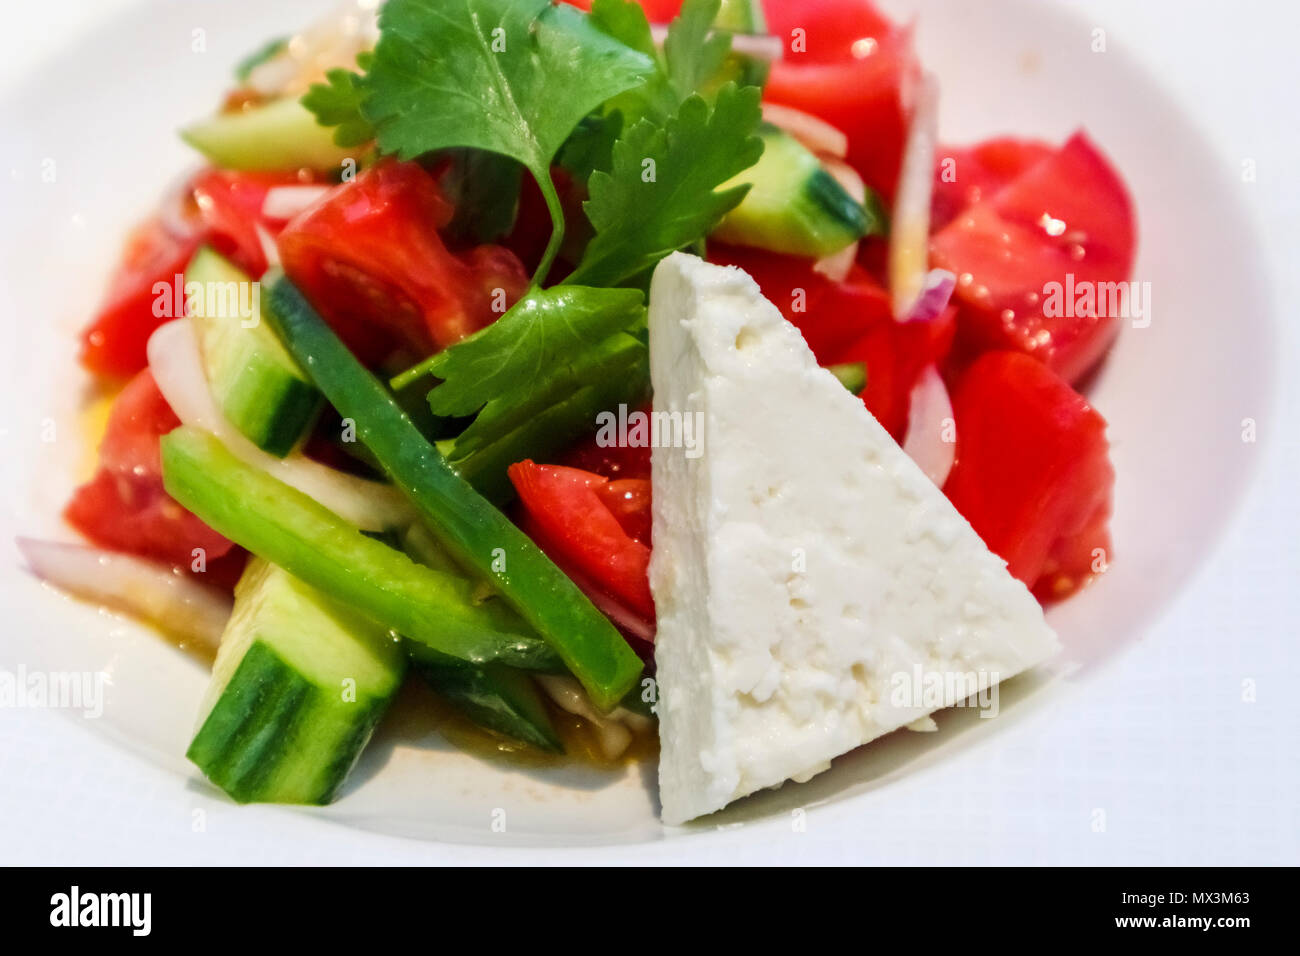 Fine dining hors d'oeuvres: Plate of healthy Greek salad as a first course, with feta cheese, chopped tomatoes, cucumber and a sprig of parsley - Stock Image